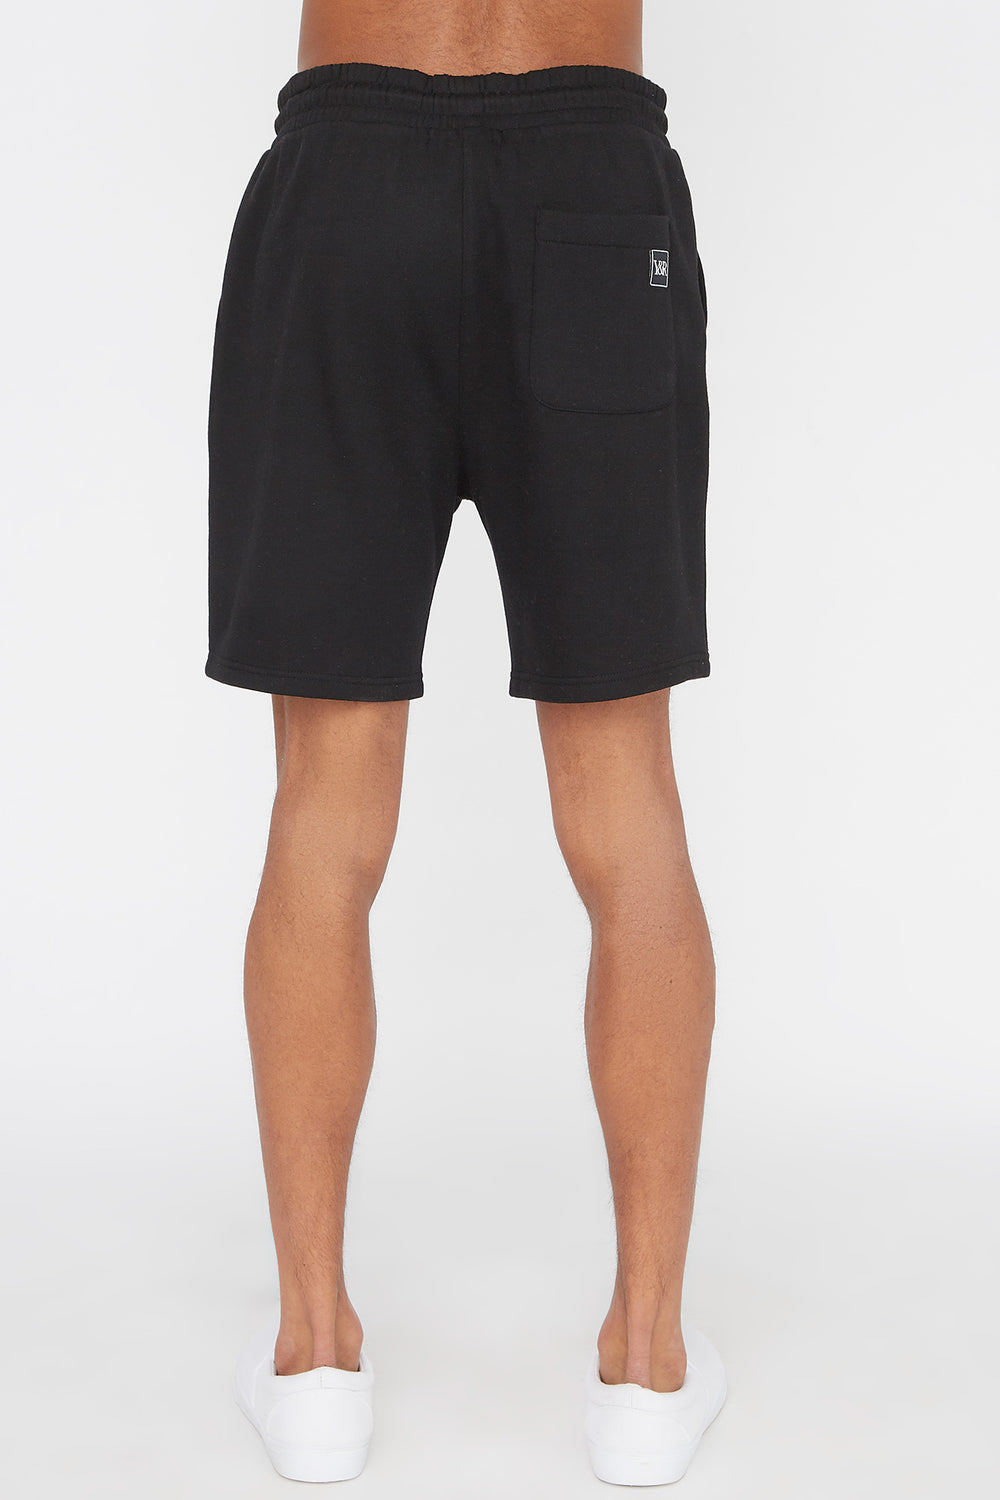 Short Fluo Young & Reckless Homme Noir